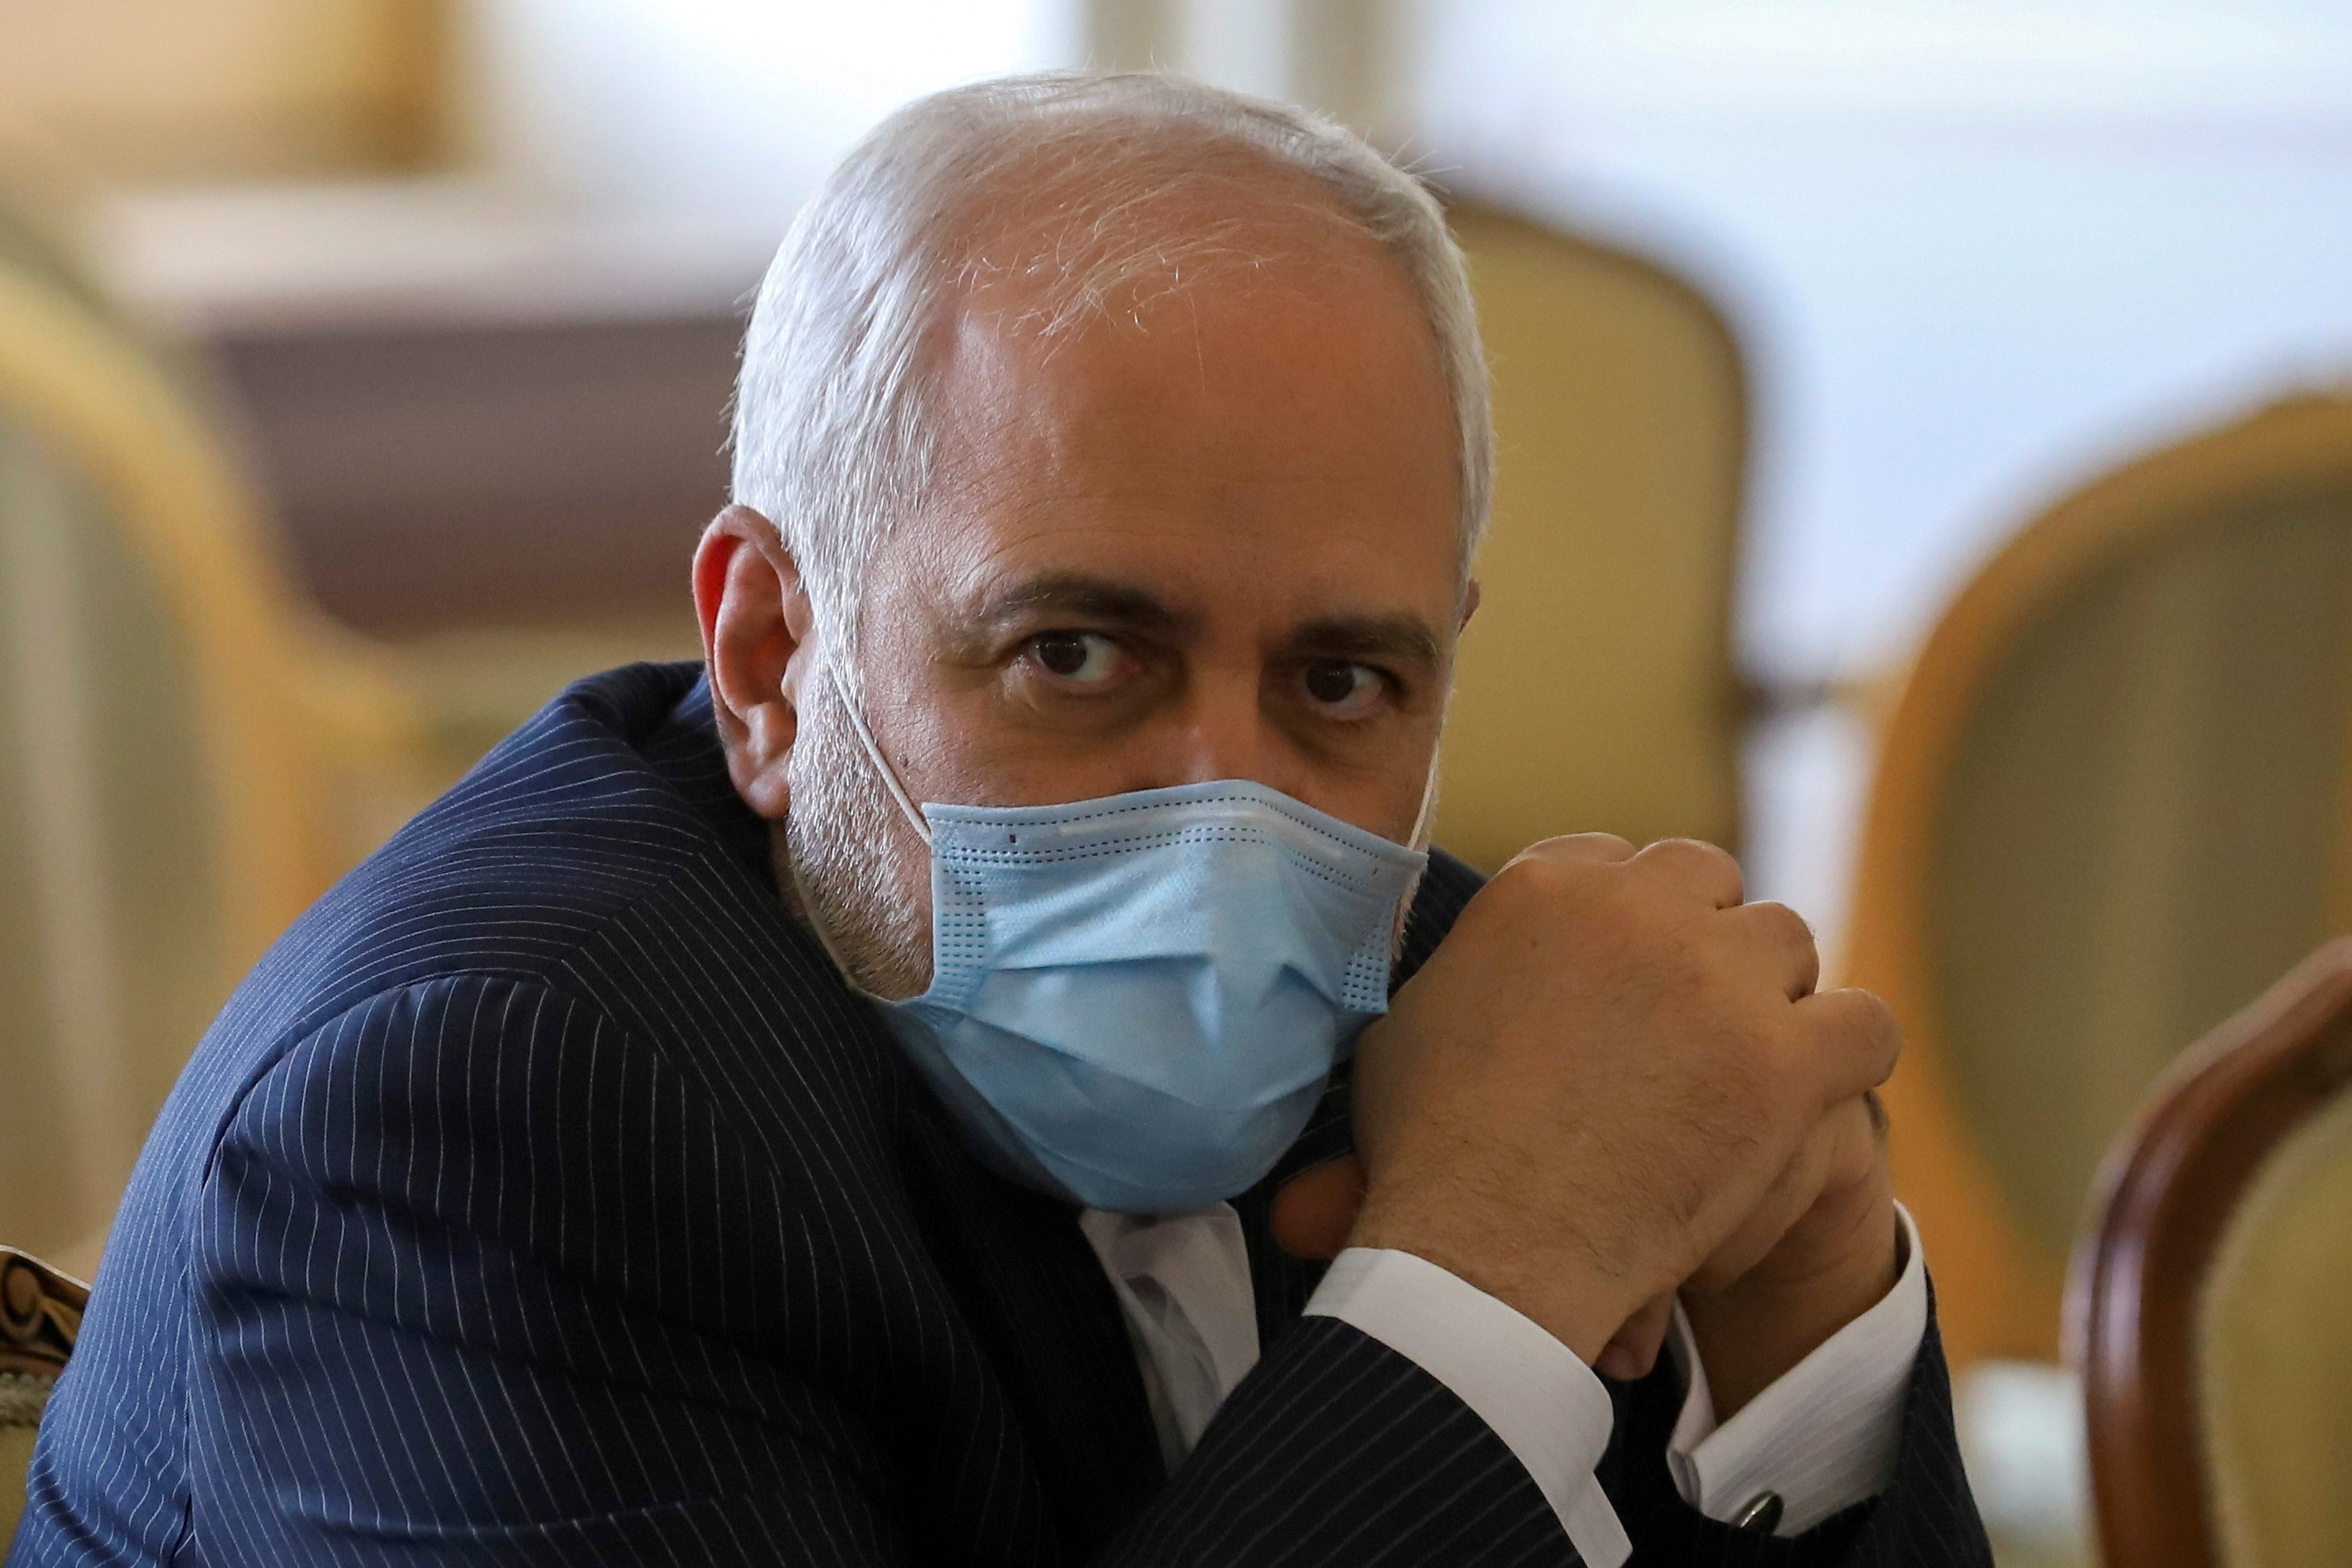 Iran's Foreign Minister Mohammad Javad Zarif looks on during a meeting with International Atomic Energy Agency (IAEA) Director General Rafael Grossi in Tehran, Iran February 21, 2021. Majid Asgaripour/WANA (West Asia News Agency) via REUTERS